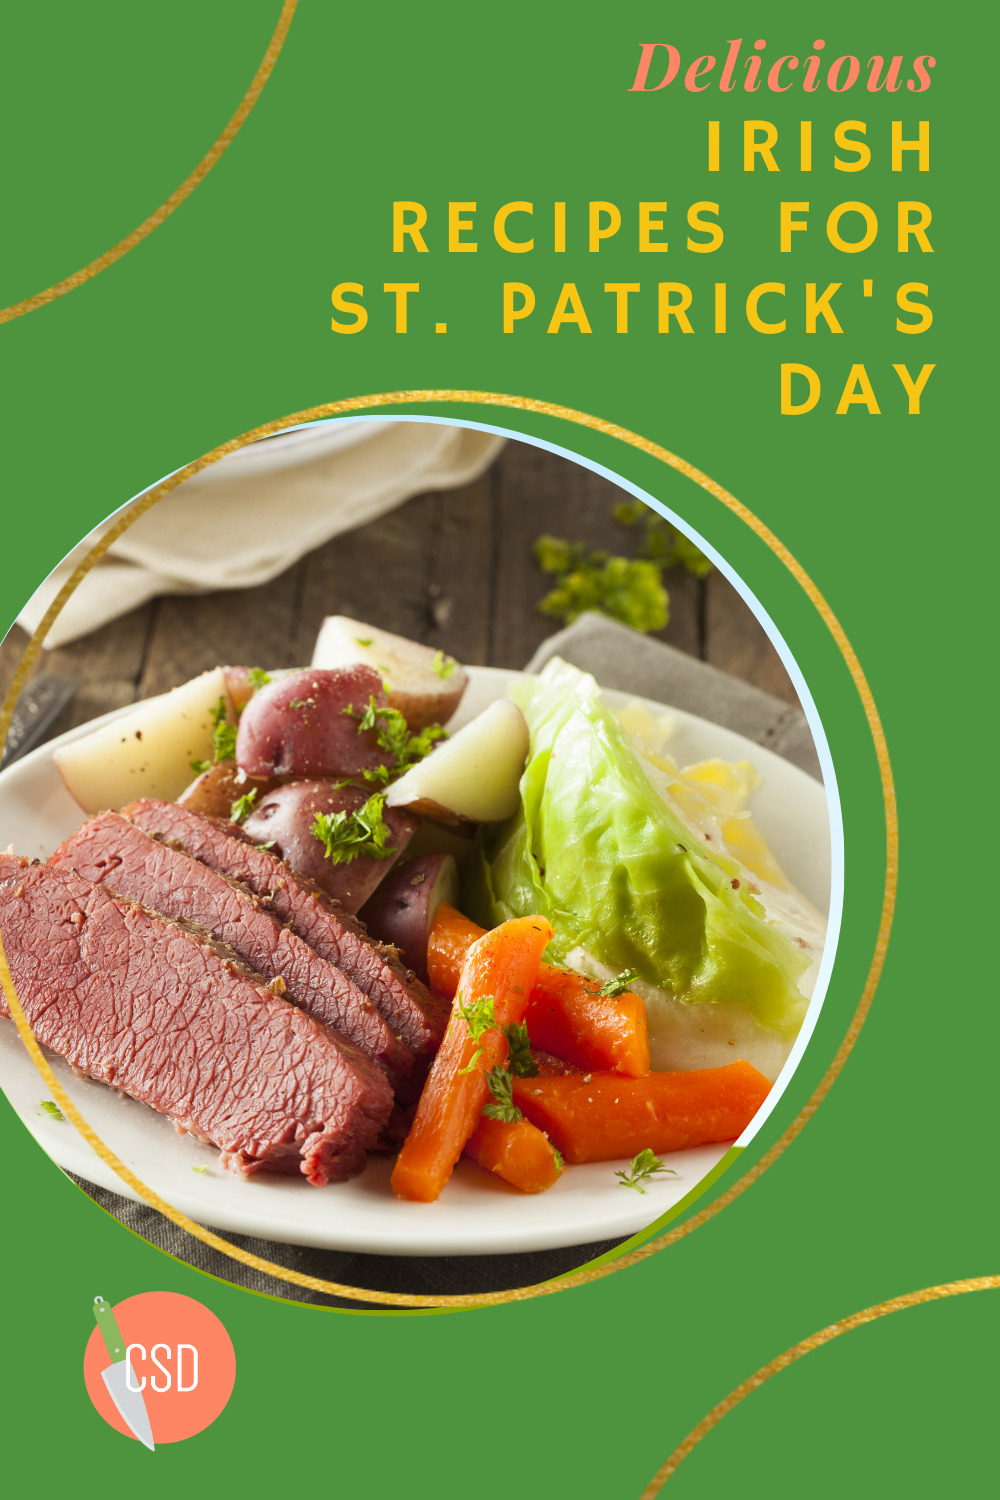 Cutsidedown.com makes cooking a breeze. Find loads of inspired recipes and ideas for around the kitchen. Check out these easy Irish recipes you can make to celebrate St. Patrick's Day.